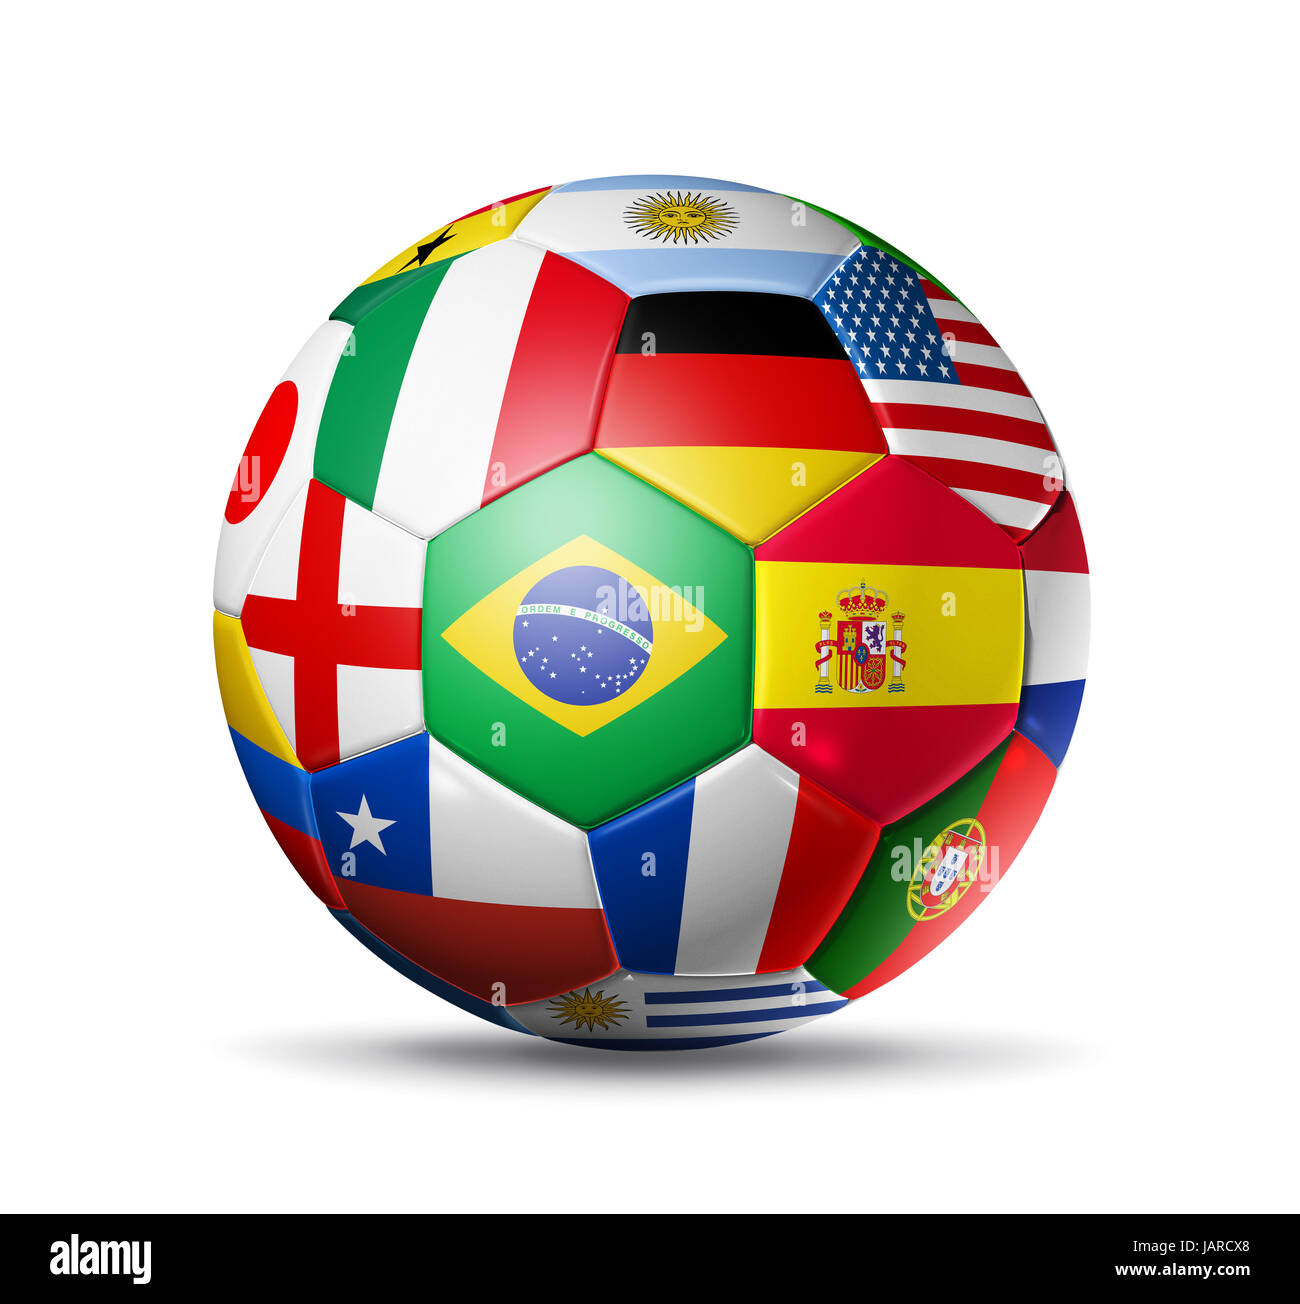 3D football soccer ball with world teams flags. brazil world cup 2014. Isolated on white with clipping path - Stock Image